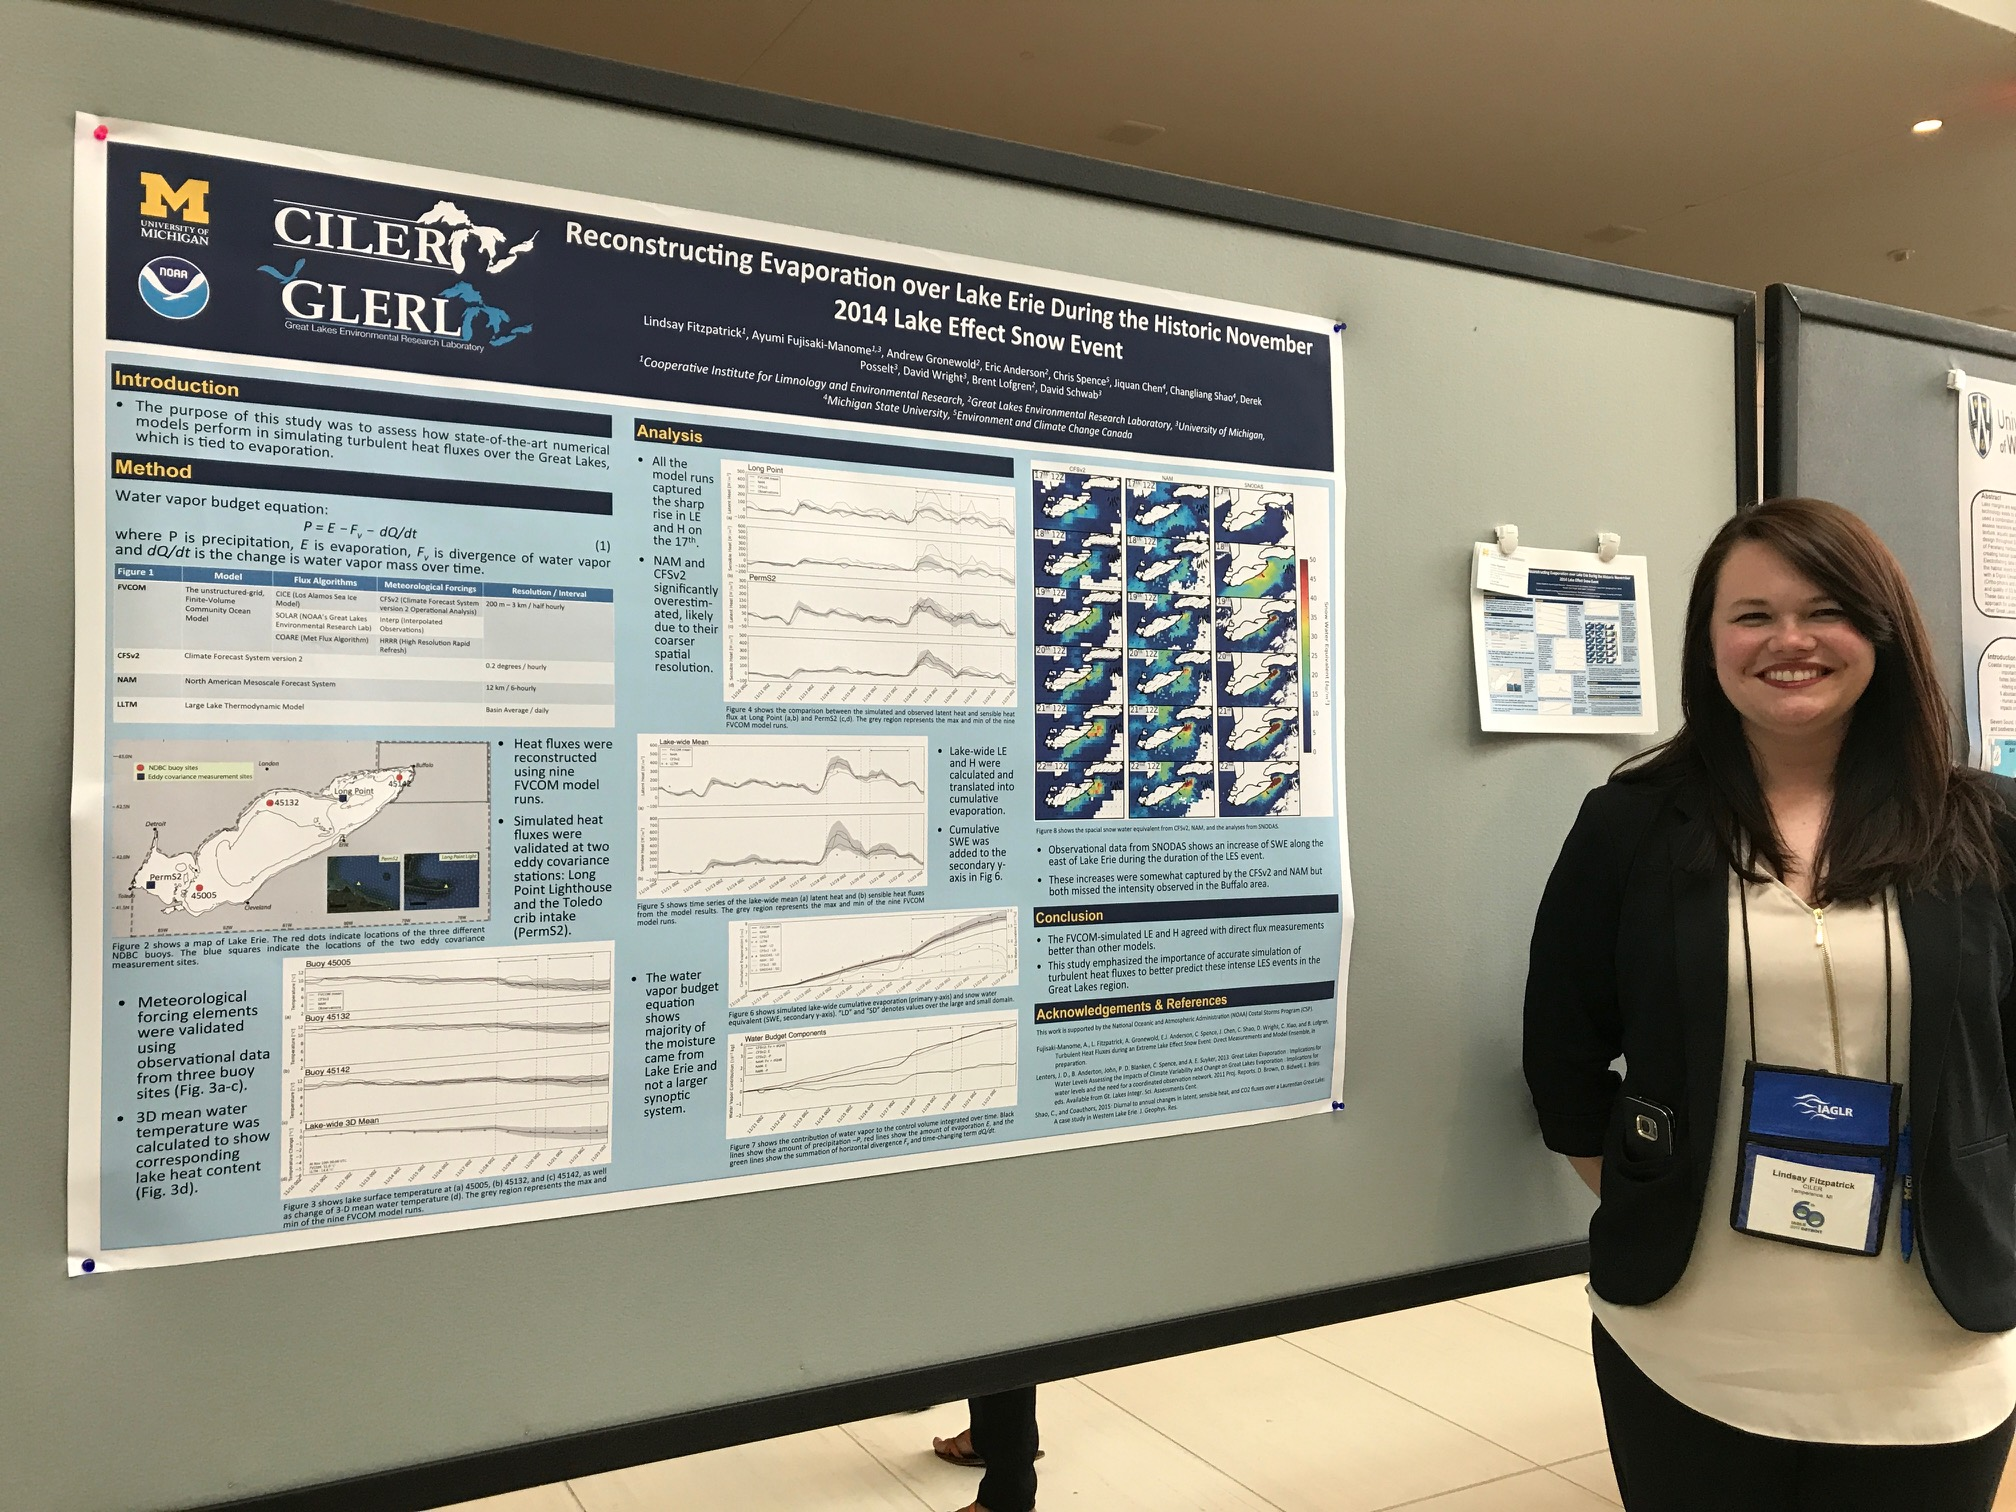 CIGLR's Atmospheric Data Analyst, Lindsay Fitzpatrick, presents her poster titled: Reconstructing Evaporation over Lake Erie During the Historic November 2014 Lake Effect Snow Event. Photo Credit: Michele Wensman.